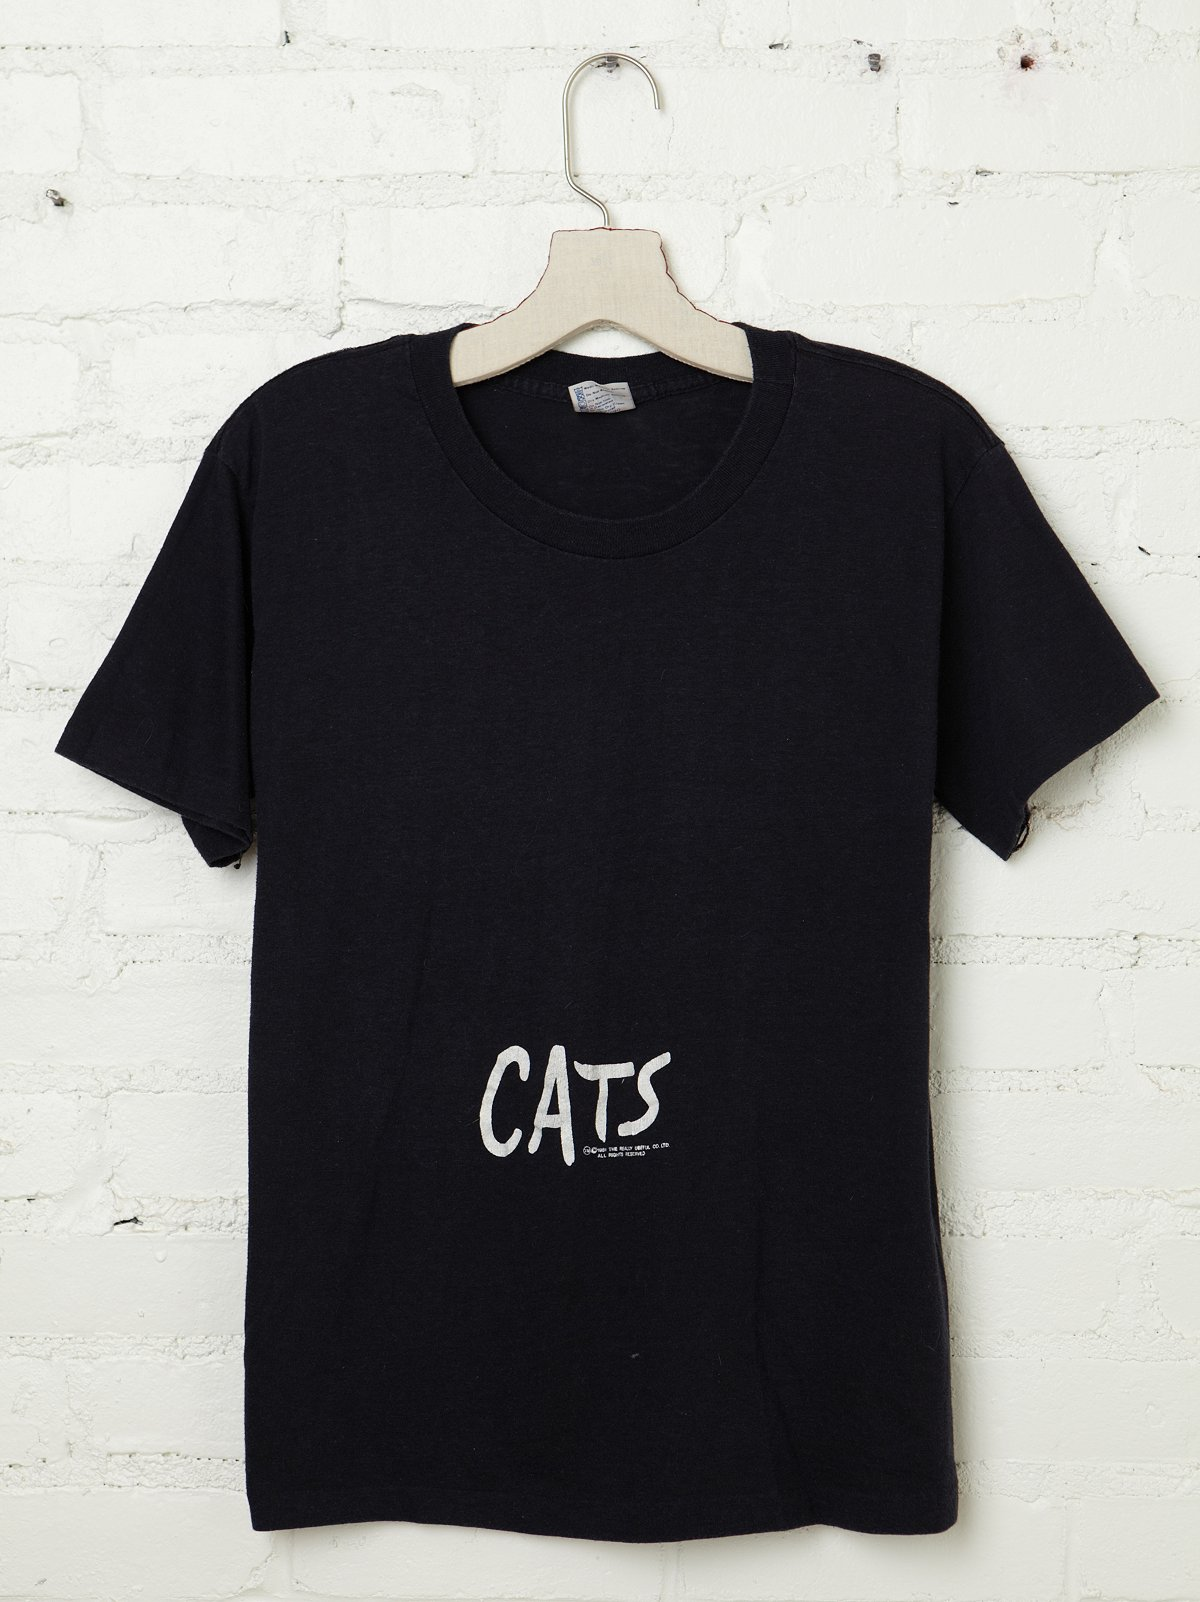 Vintage Cats Tee